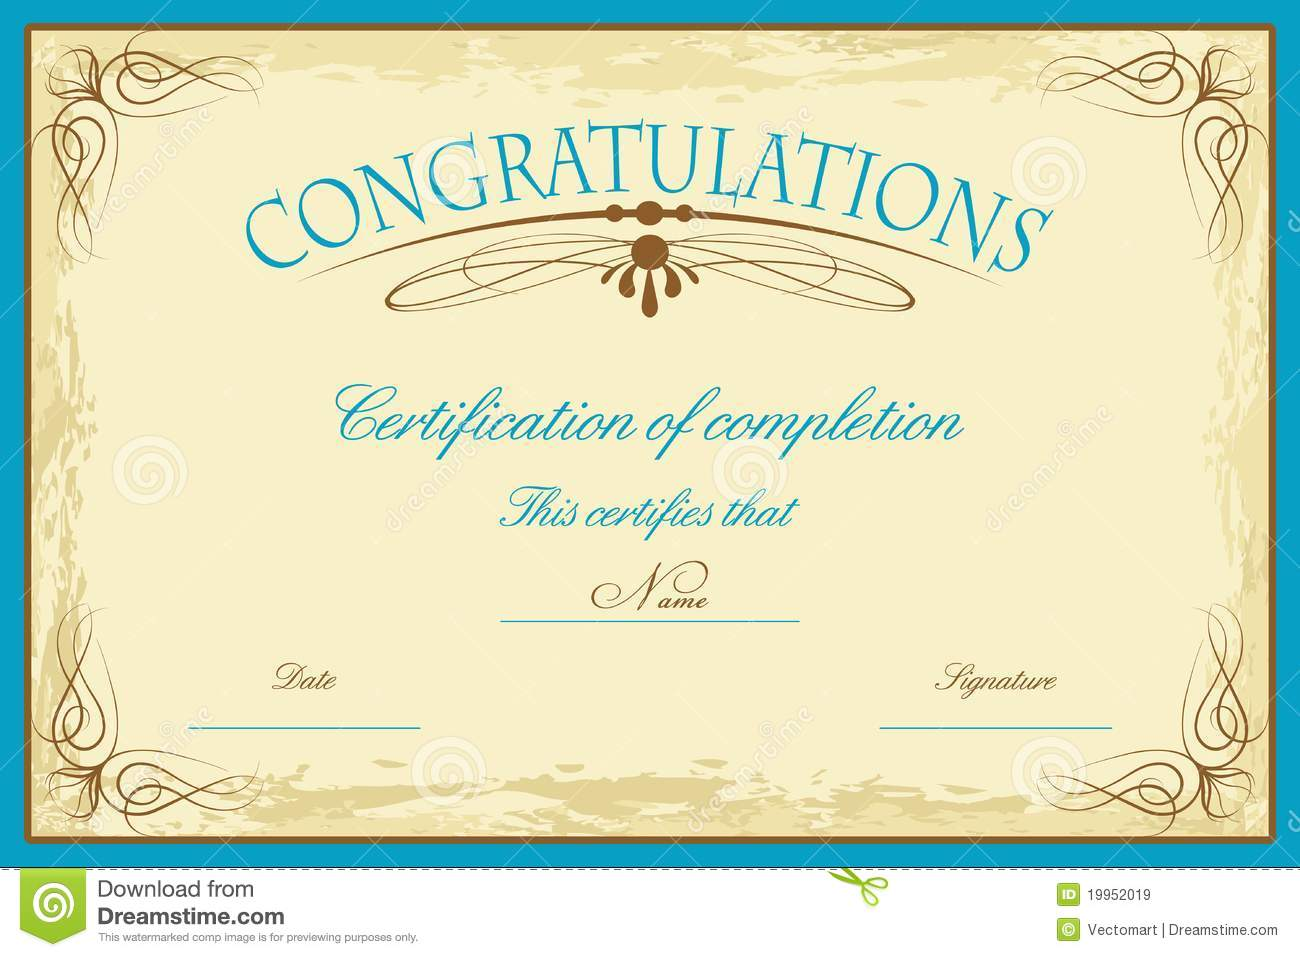 Certificate templates rich image and wallpaper for Certificate template download